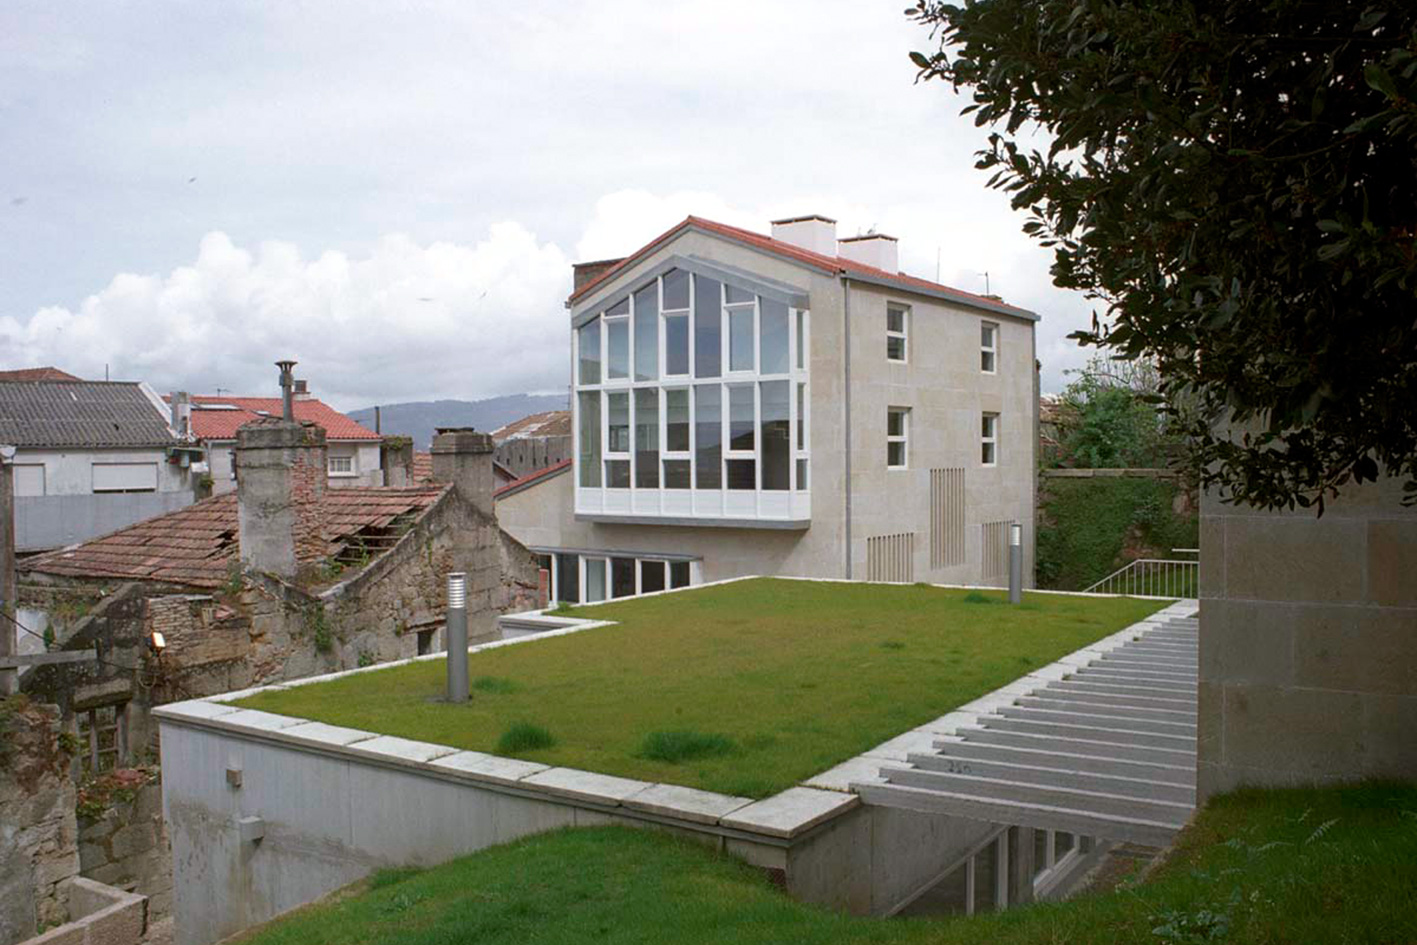 1995-2004 Social housing for young people in Vigo